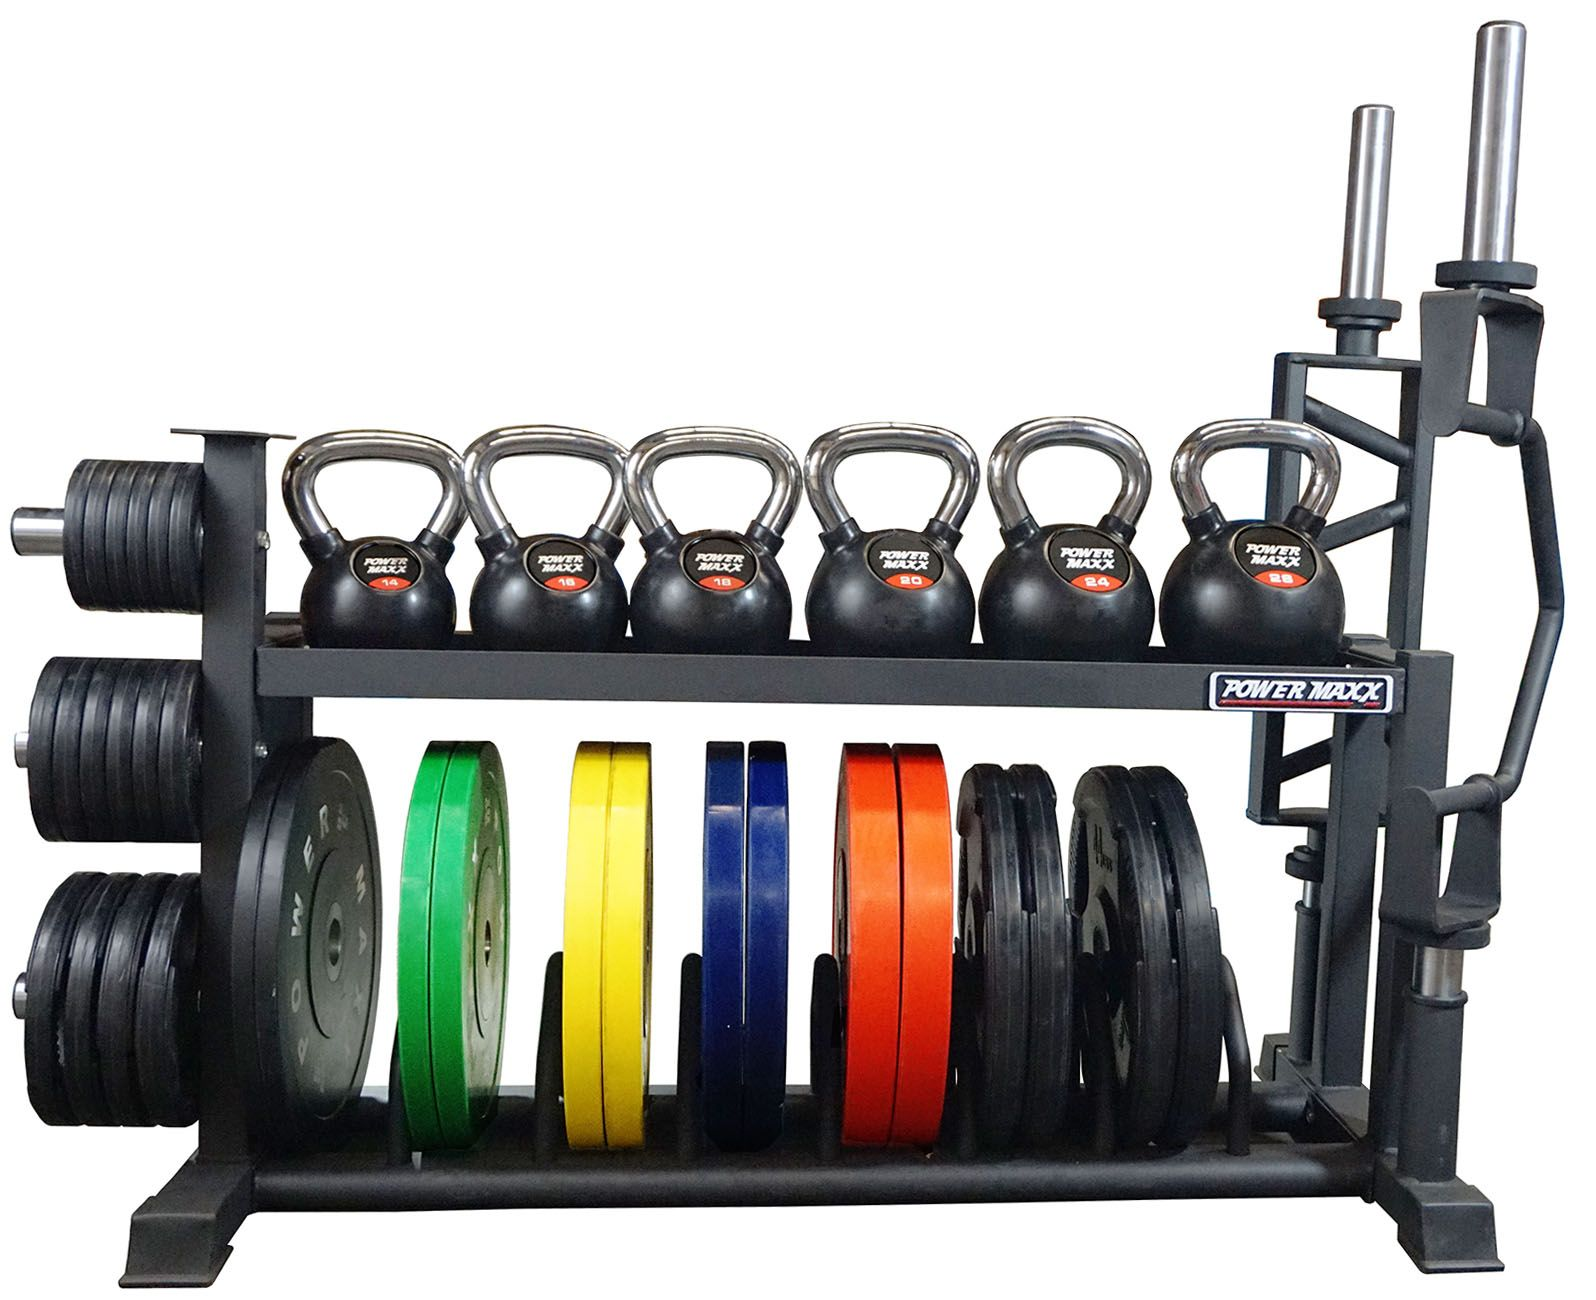 Power Maxx Bumper Barbell Rack In 2020 Kettlebell Rack Weight